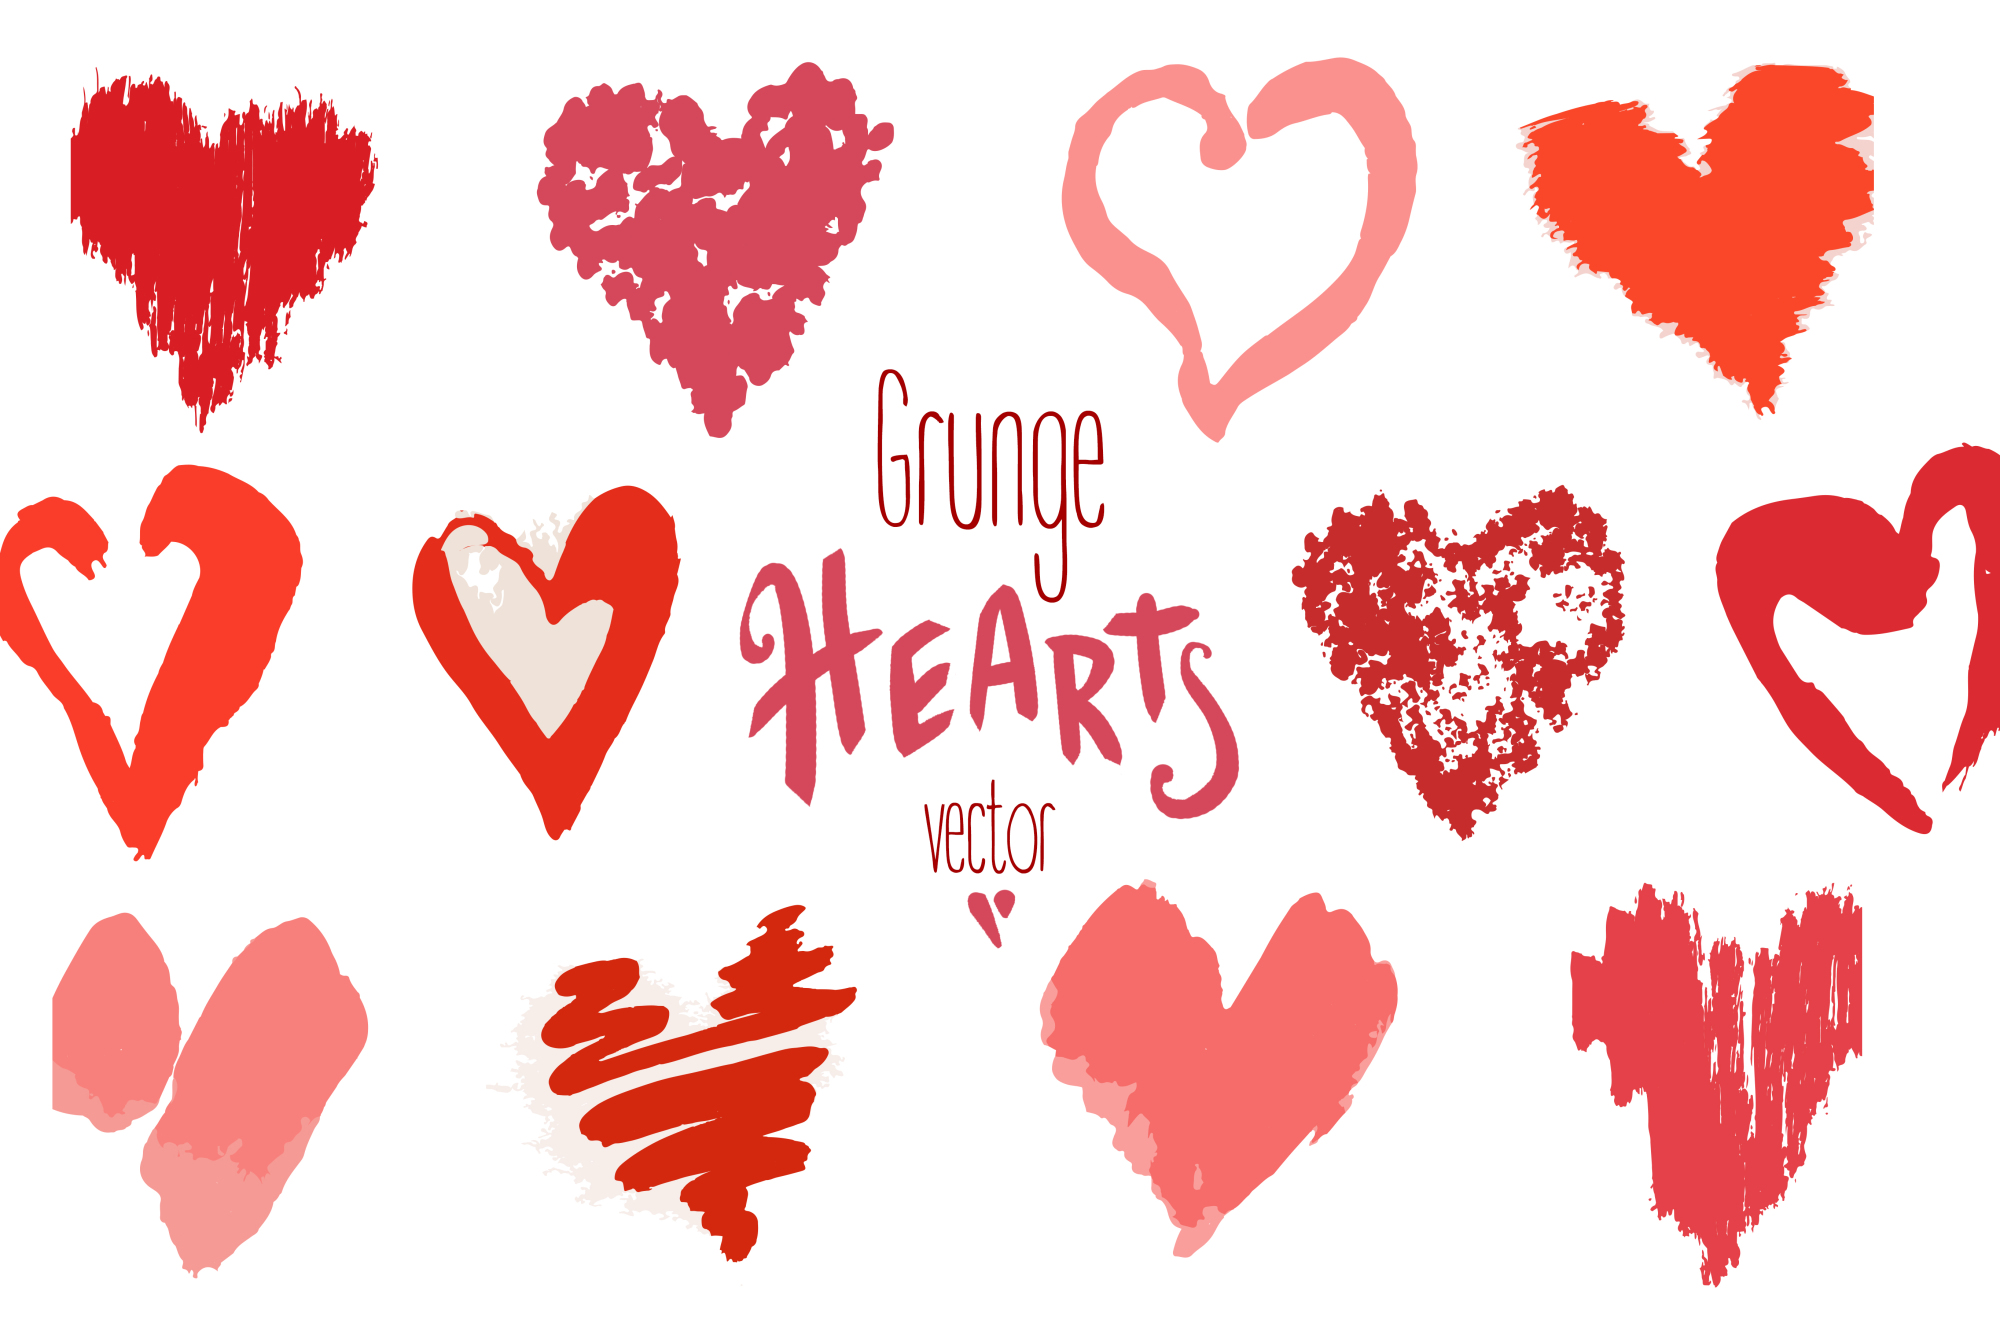 Vector grunge hearts+pattern example image 1